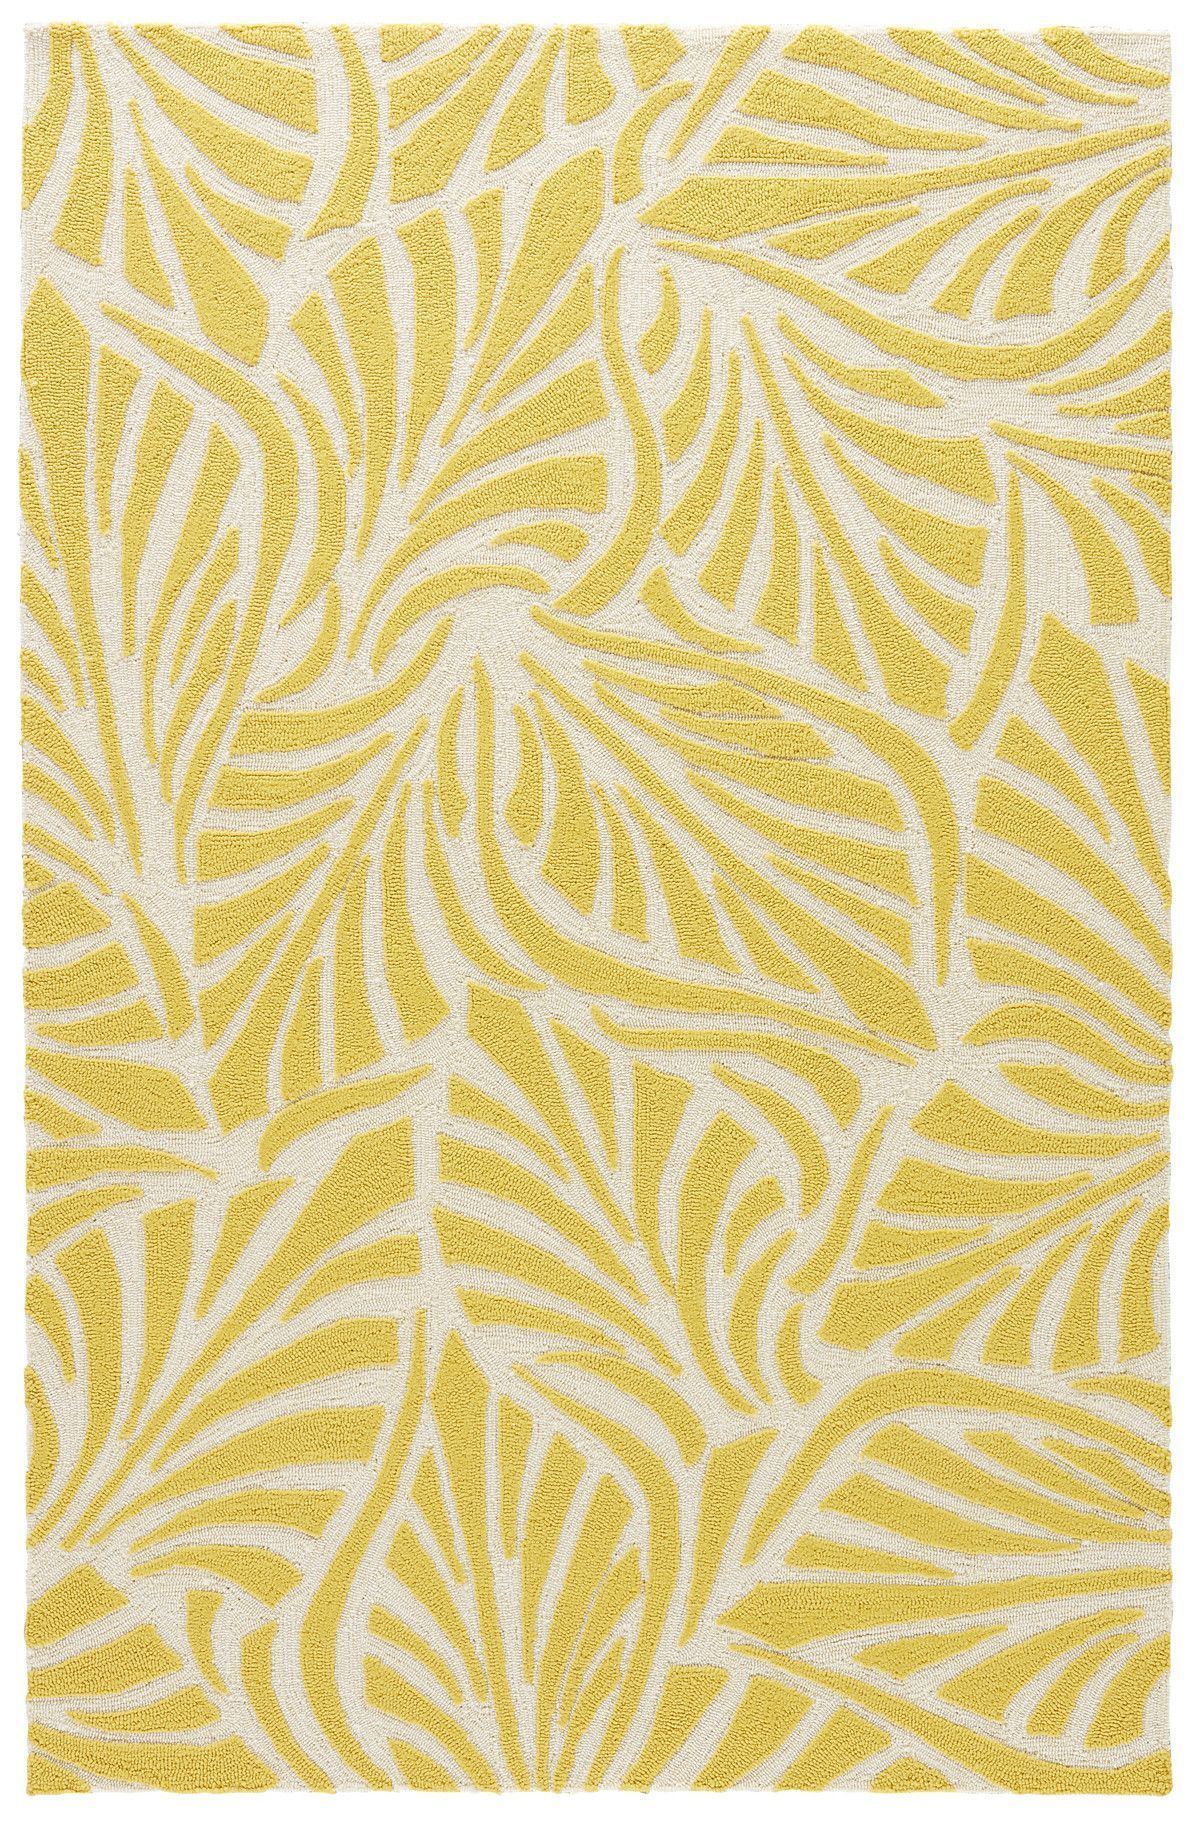 Beautiful Yellow And White Area Rug For Your Floor Decoration